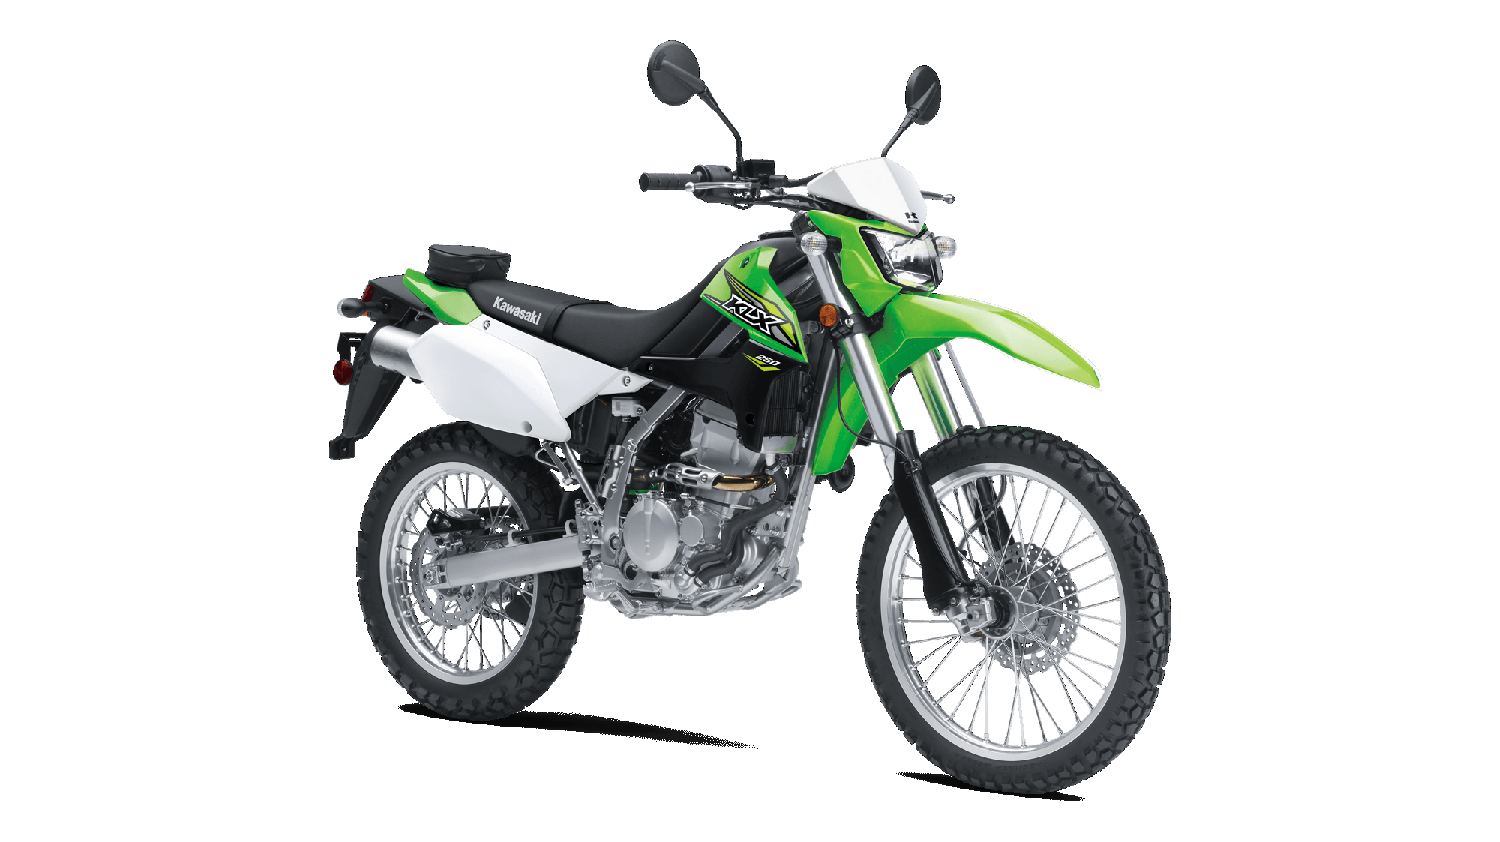 Motorcycle General Topics (Not Specific) / Kawasaki KLX 250 Returns To The  United States For 2018. «